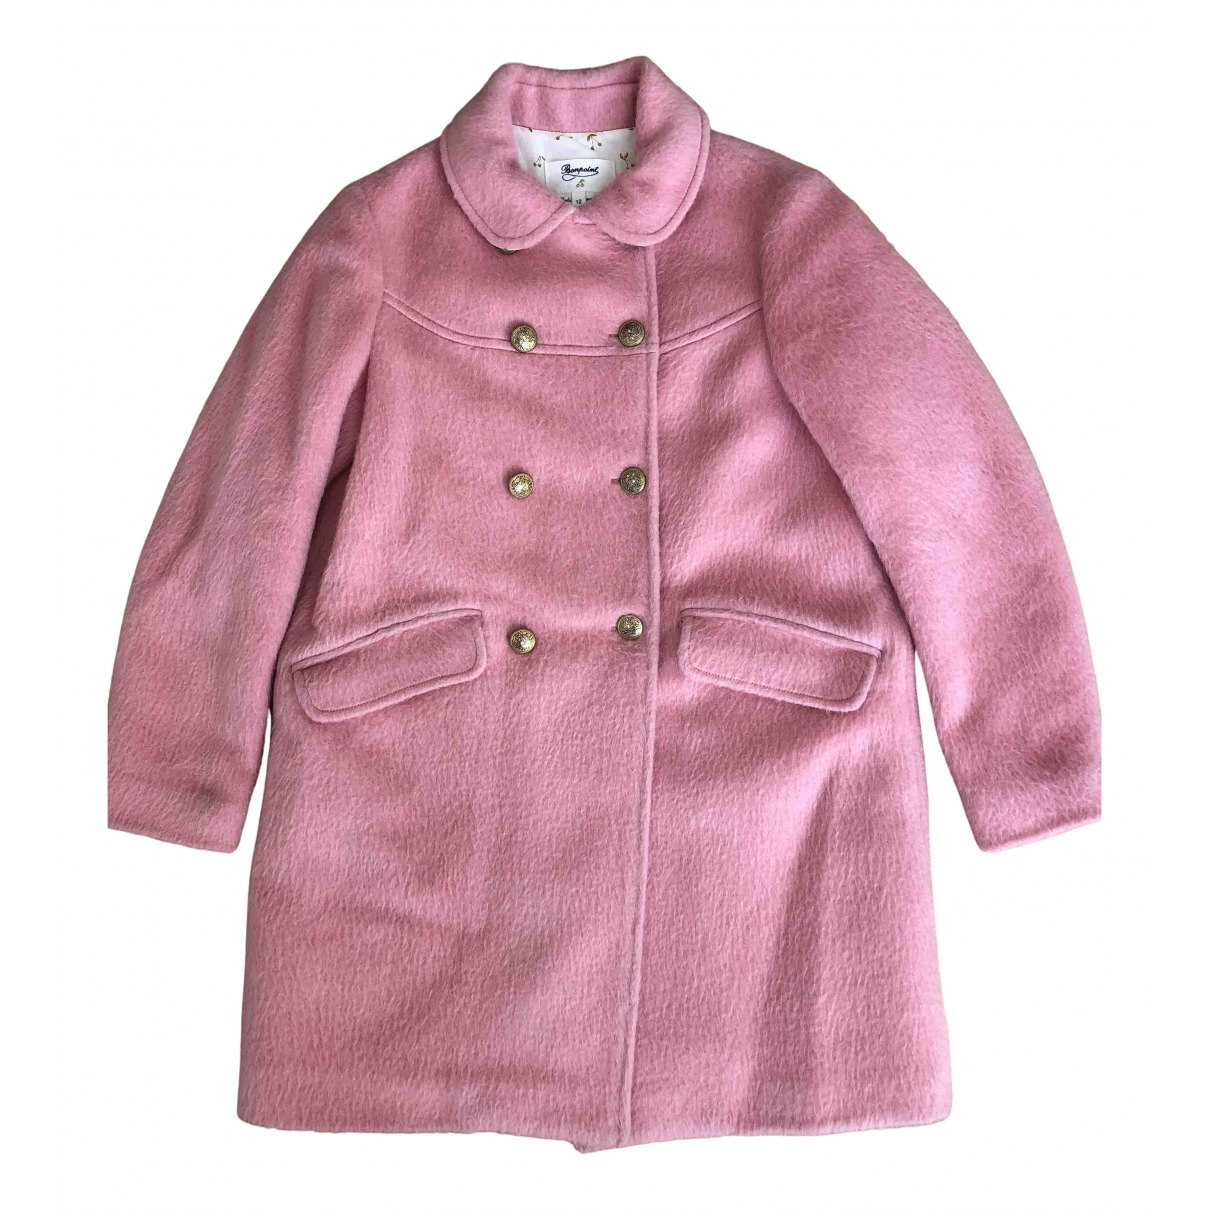 Bonpoint N Pink Wool jacket & coat for Kids 12 years - XS FR